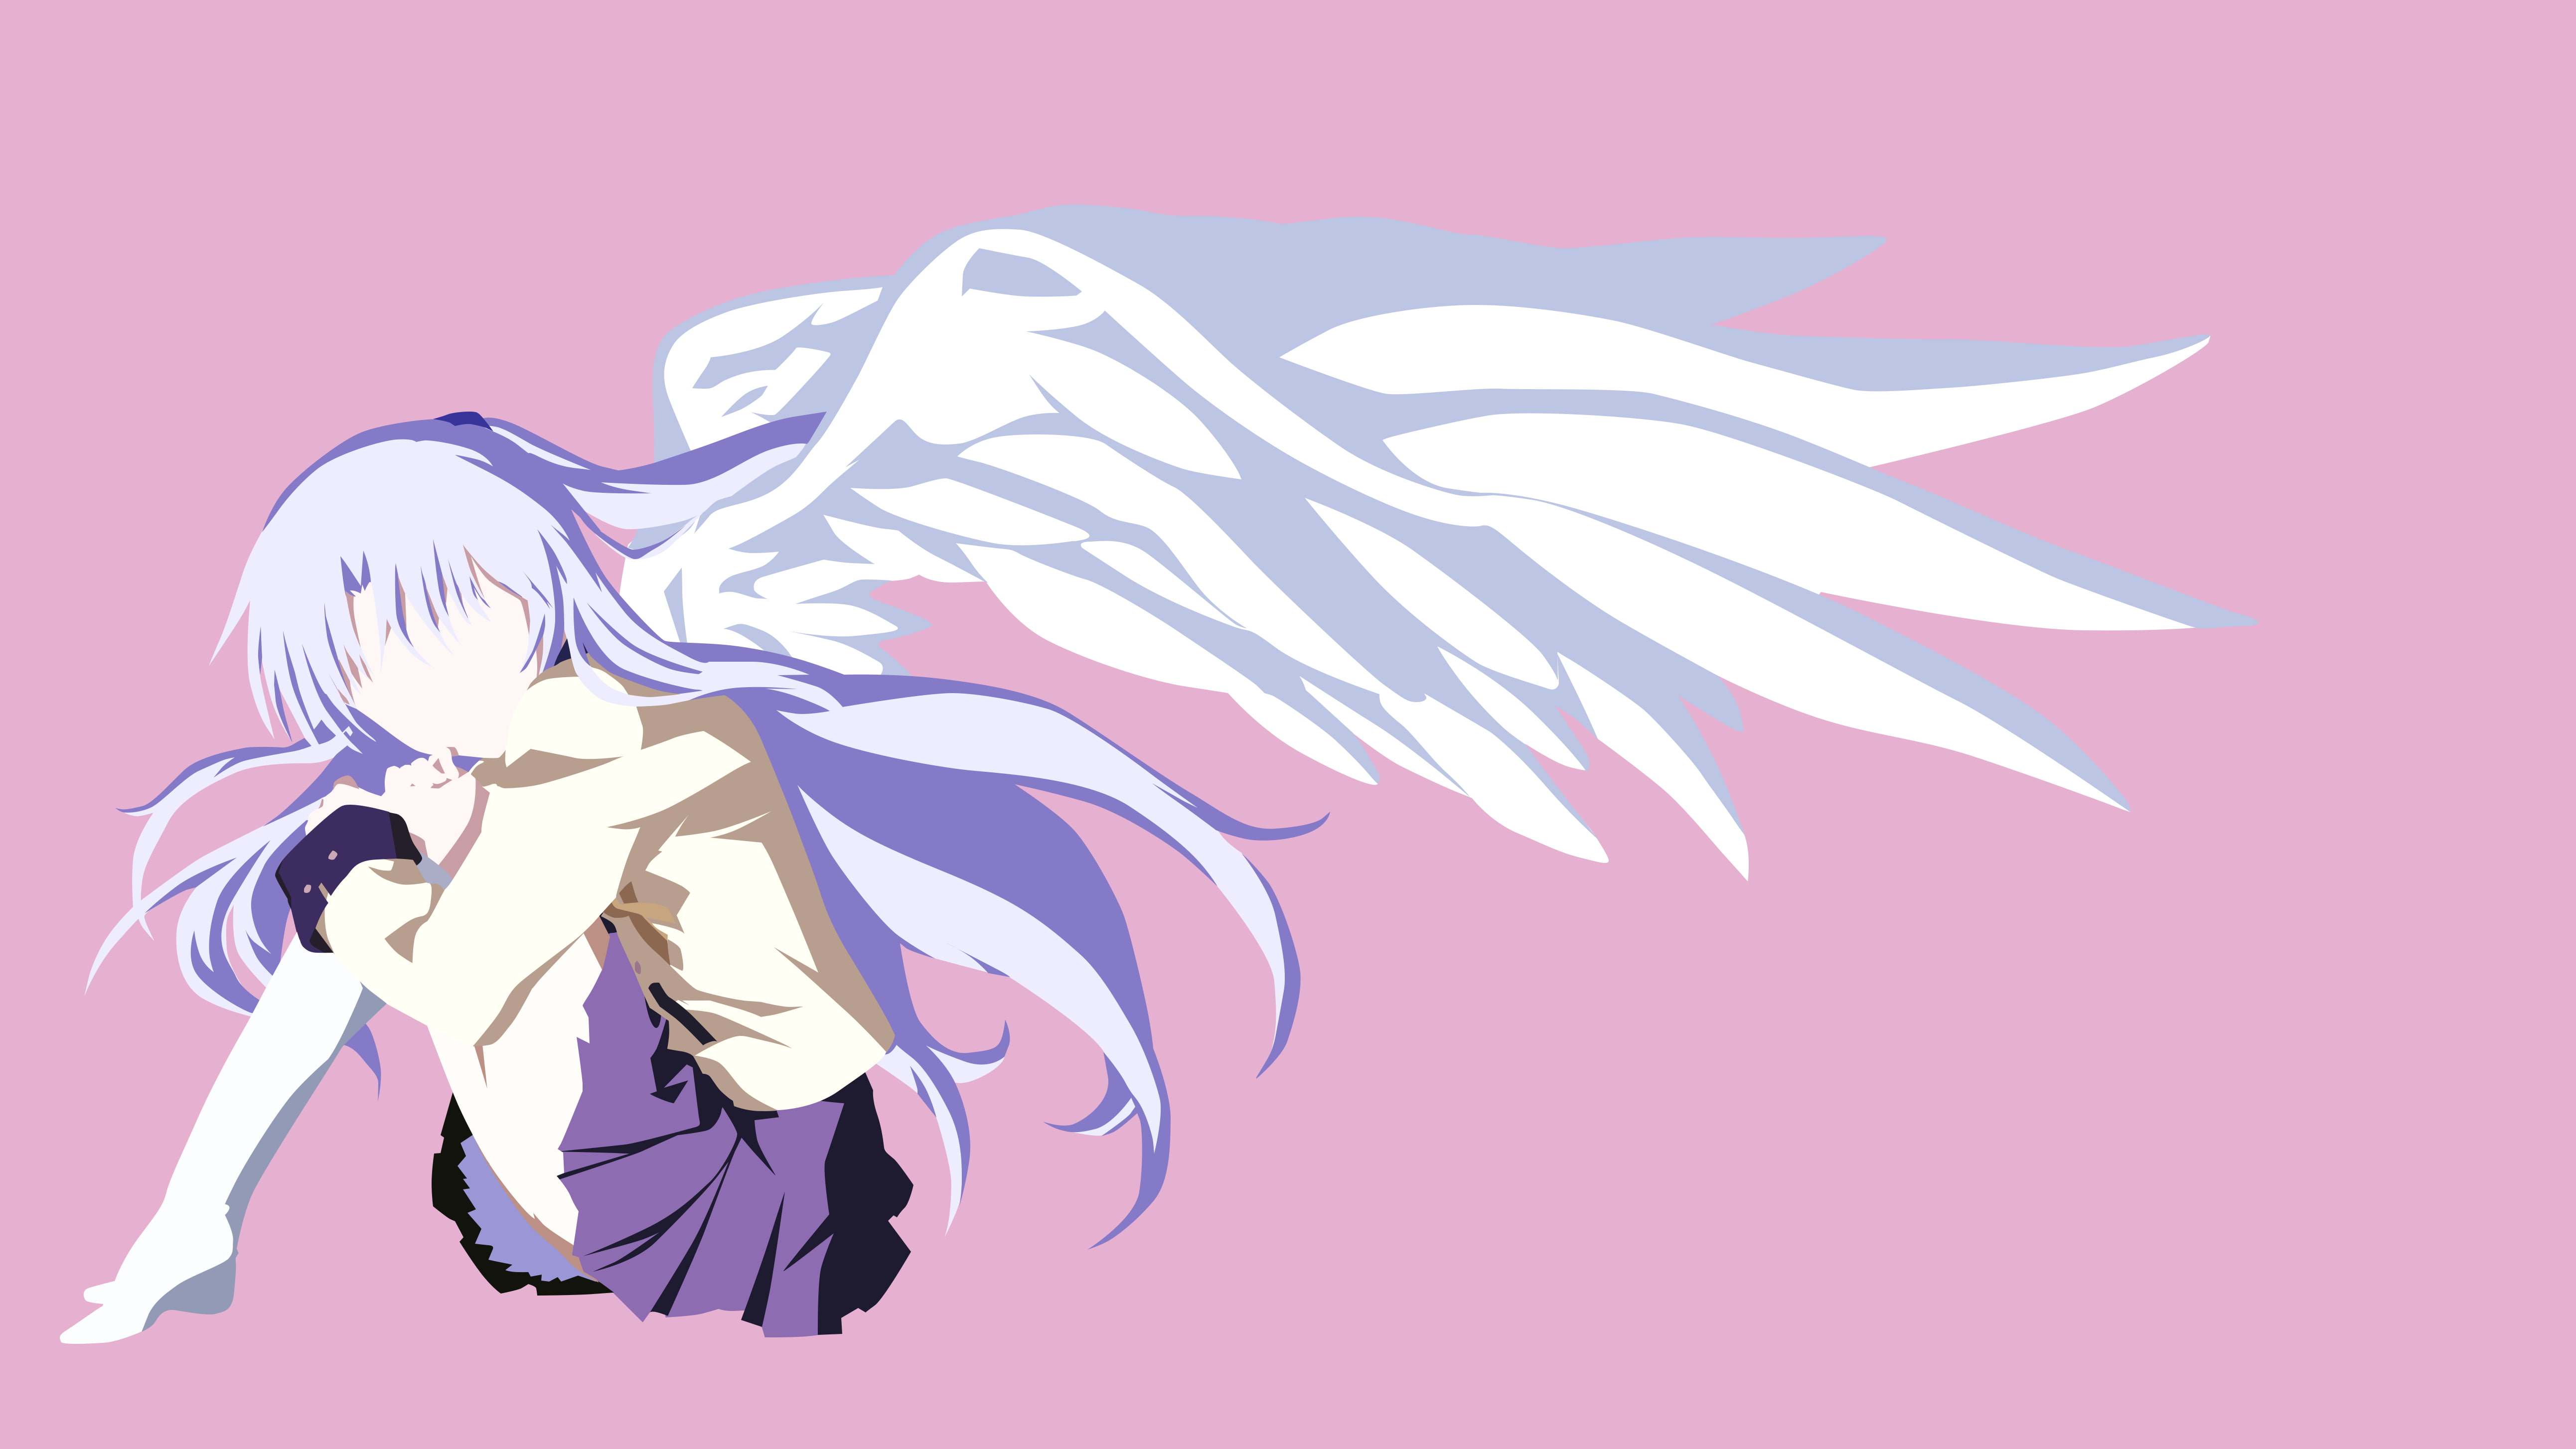 Anime Cat With Wings minimalism, angel beats , tachibana kanade, wings